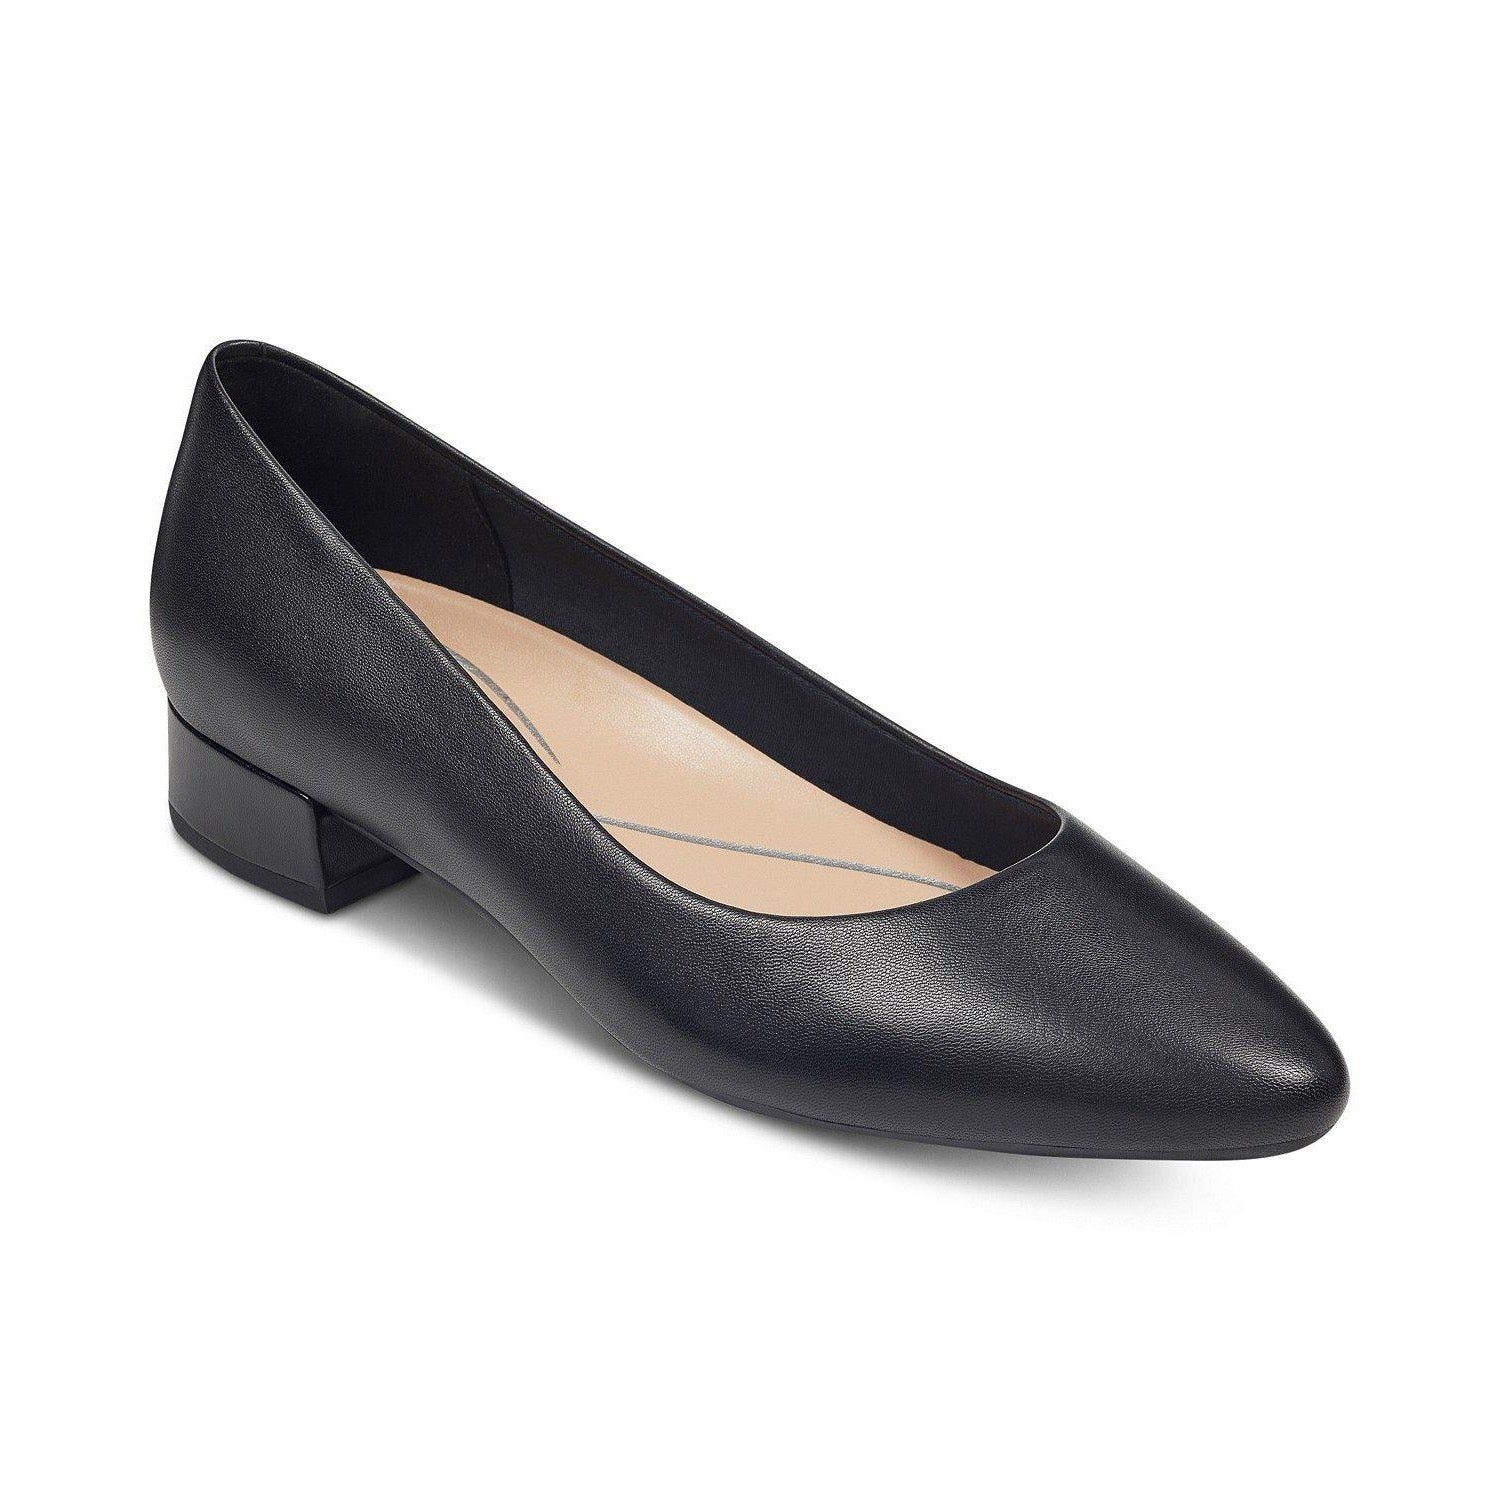 Caldise Pointed Toe Dress Pumps